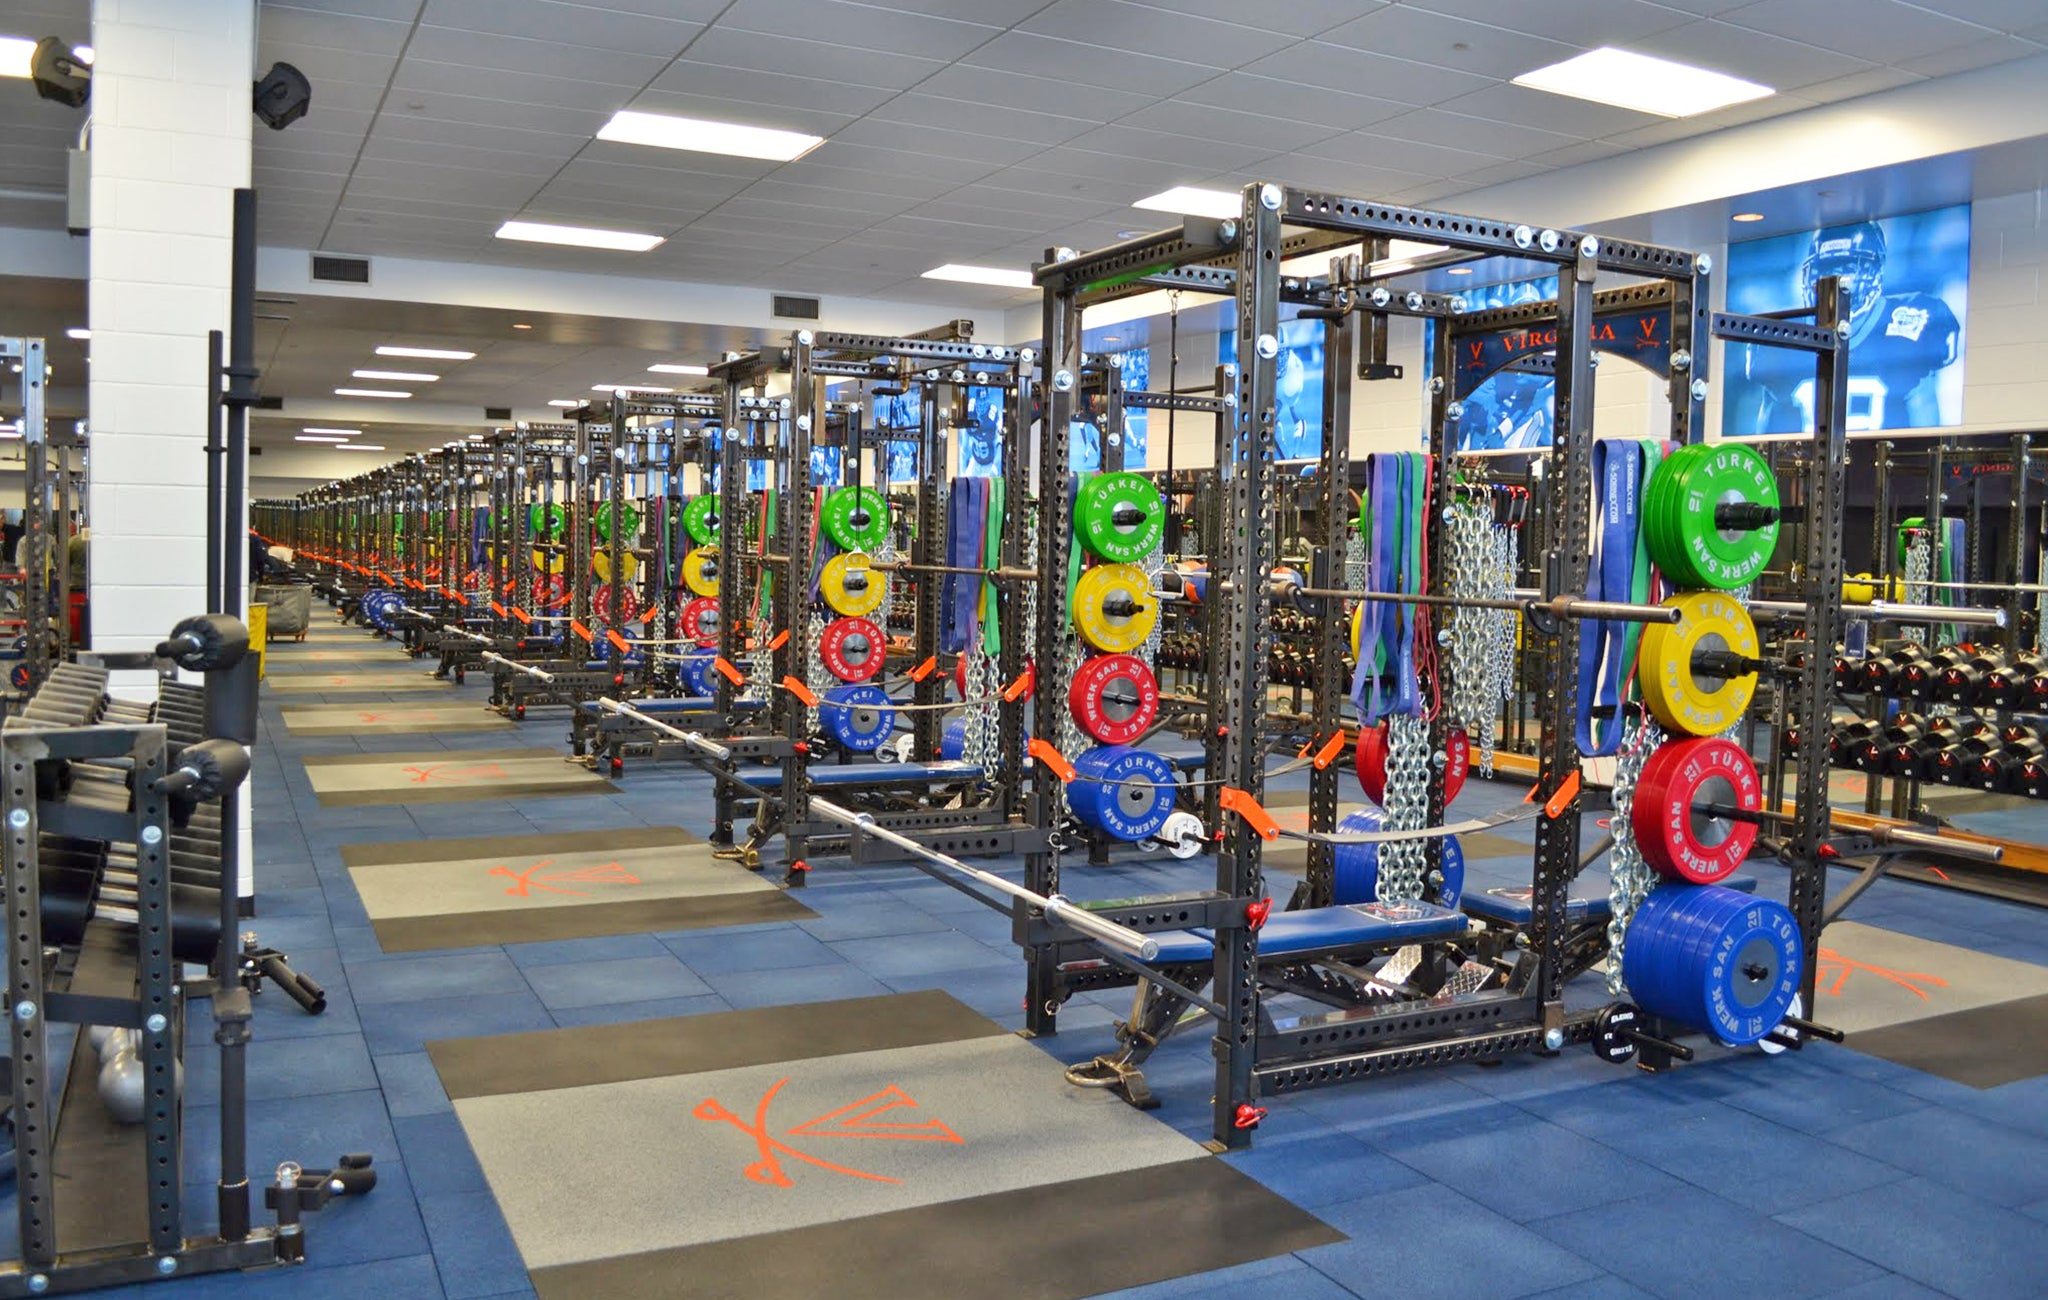 University of Virginia Weight Room